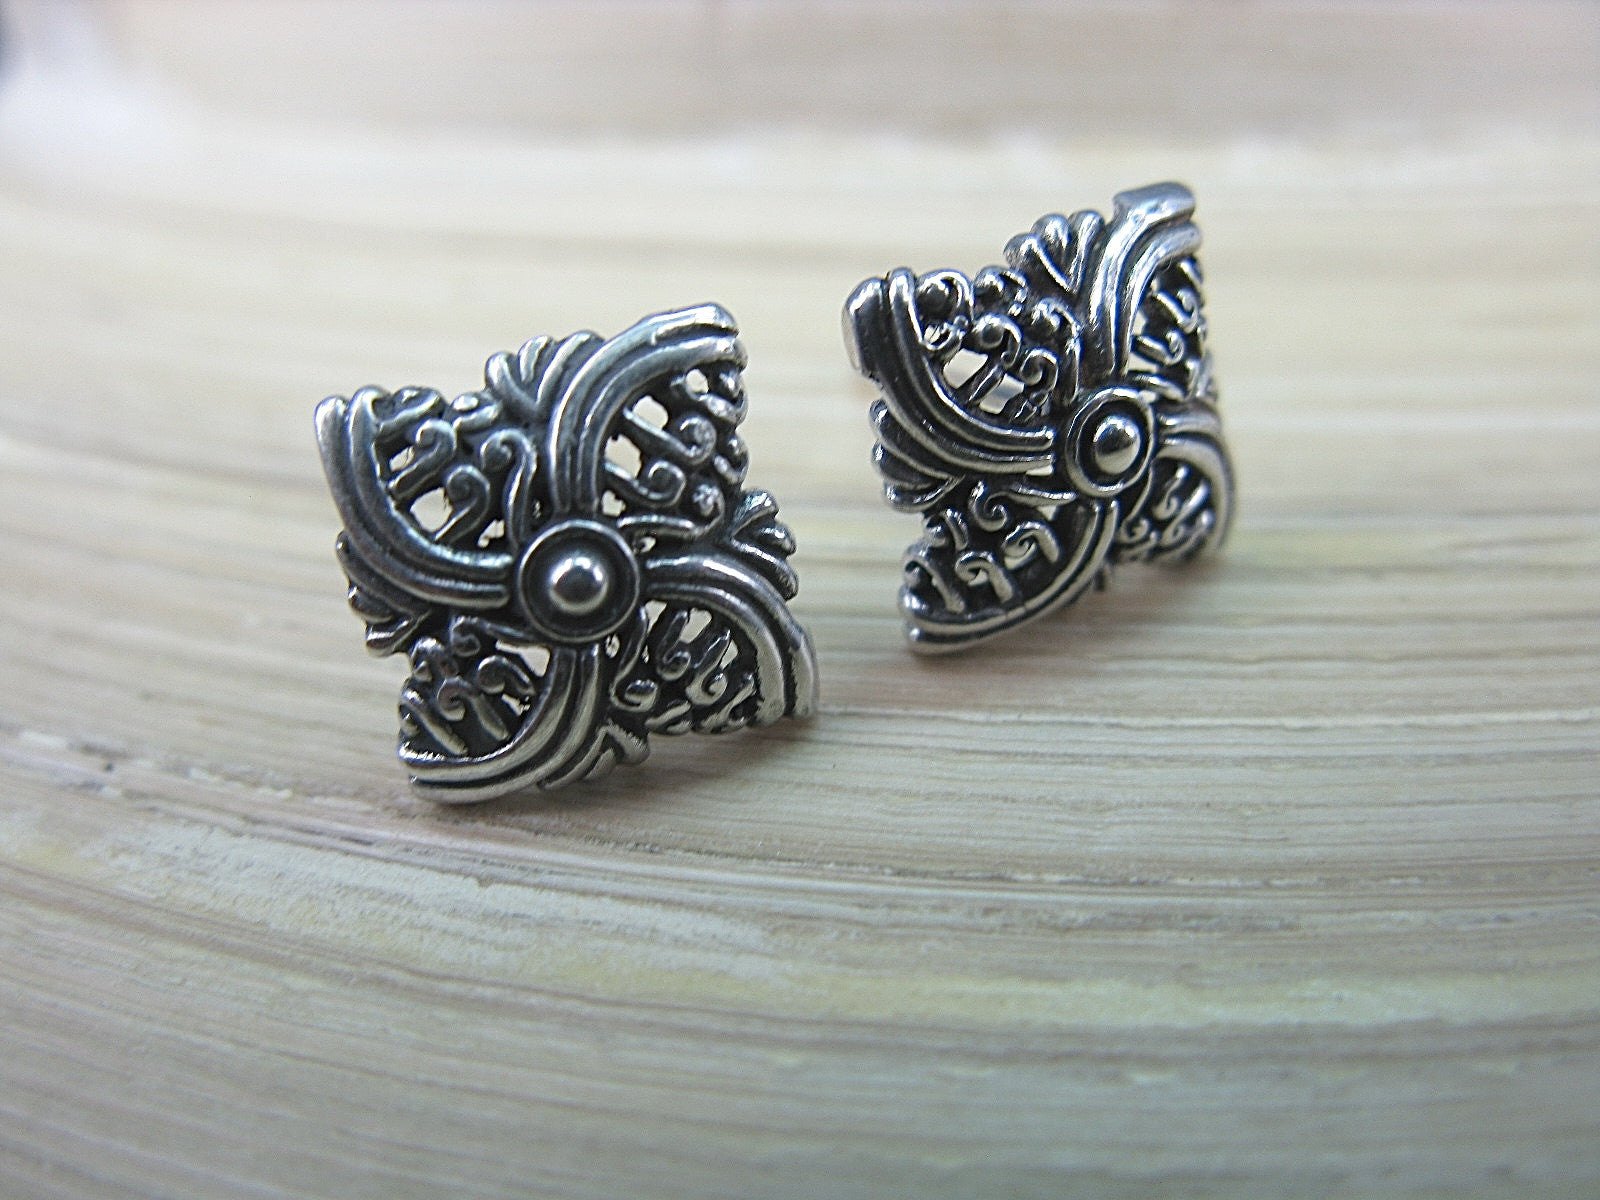 Filigree Square Balinese Swirl 925 Sterling Silver Stud Earrings Stud Faith Owl - Faith Owl